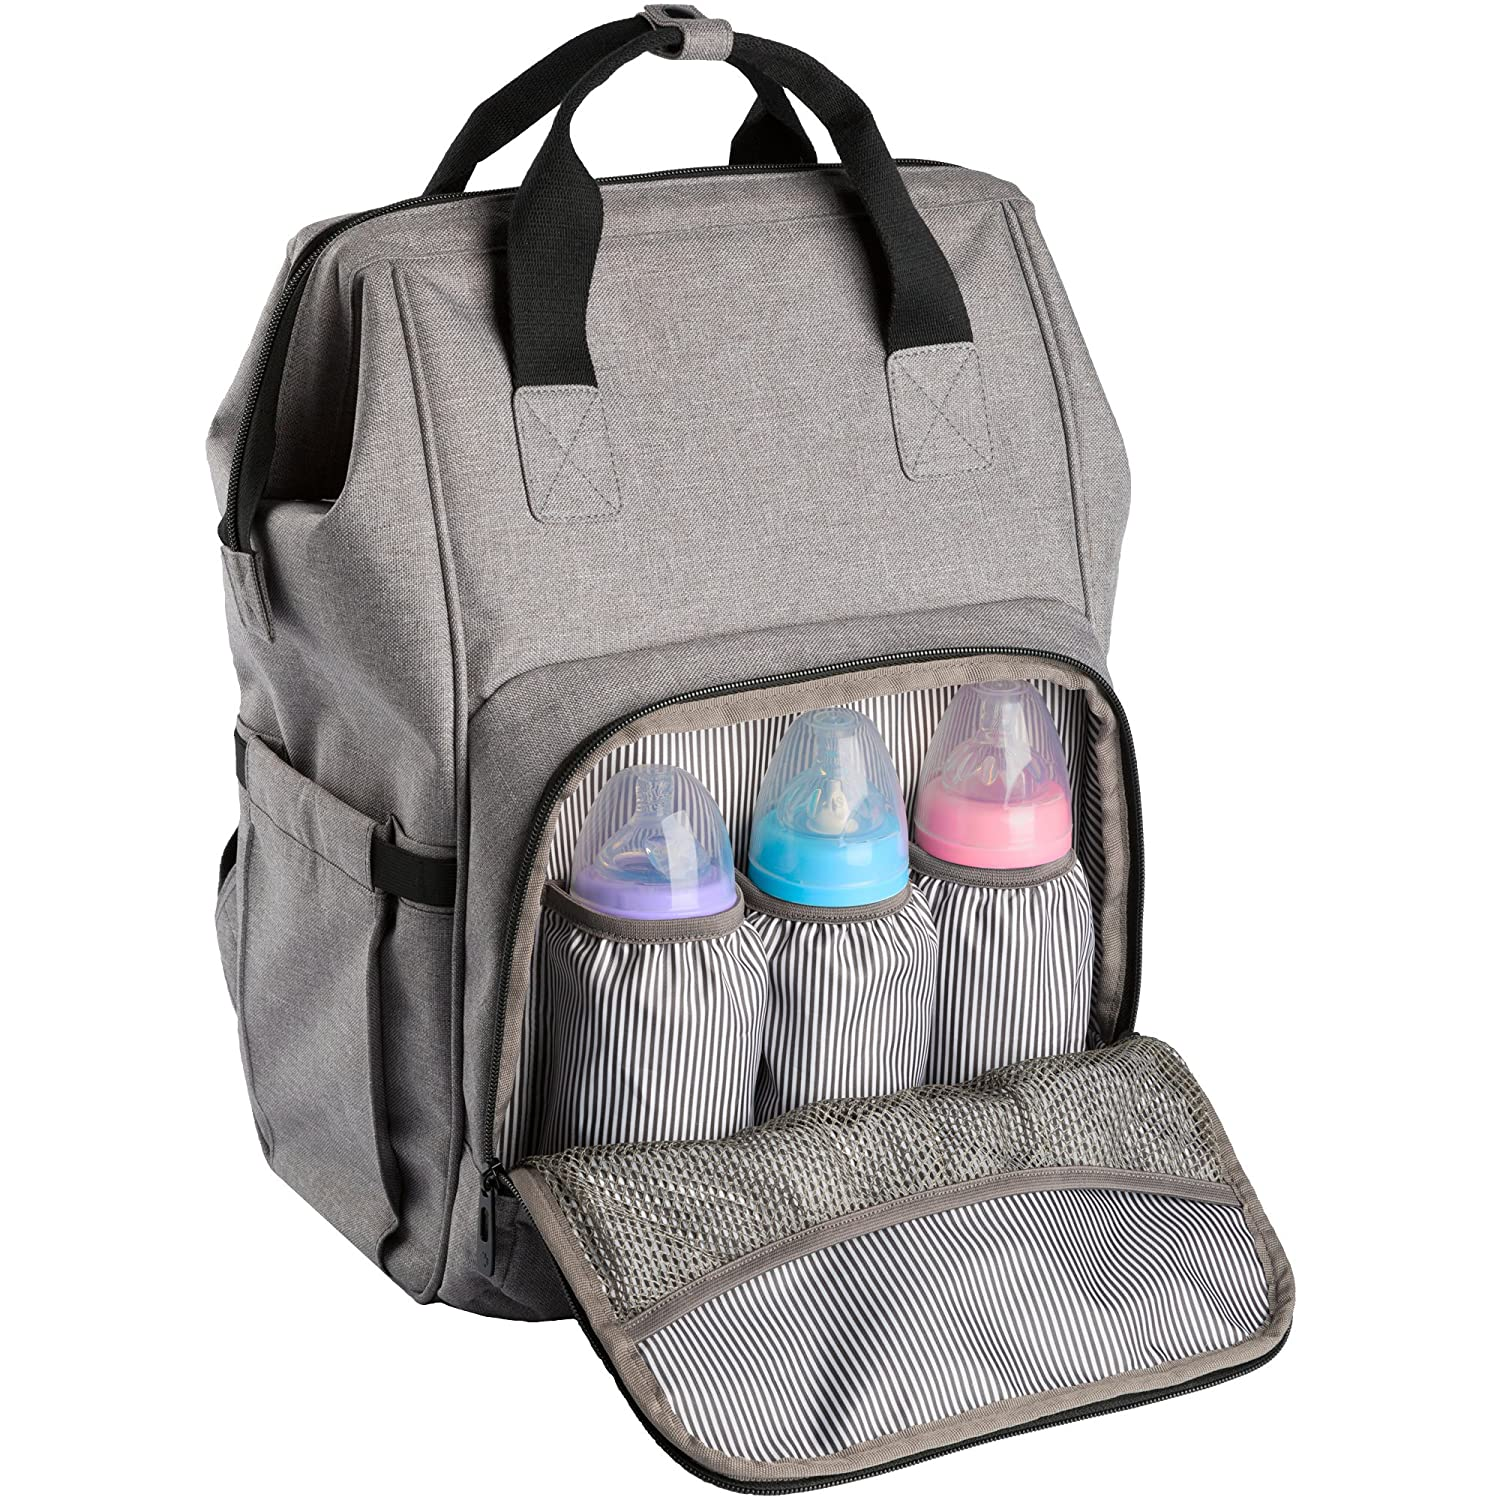 Top Rated Backpack Diaper Bags | Top Selling Diaper Bags